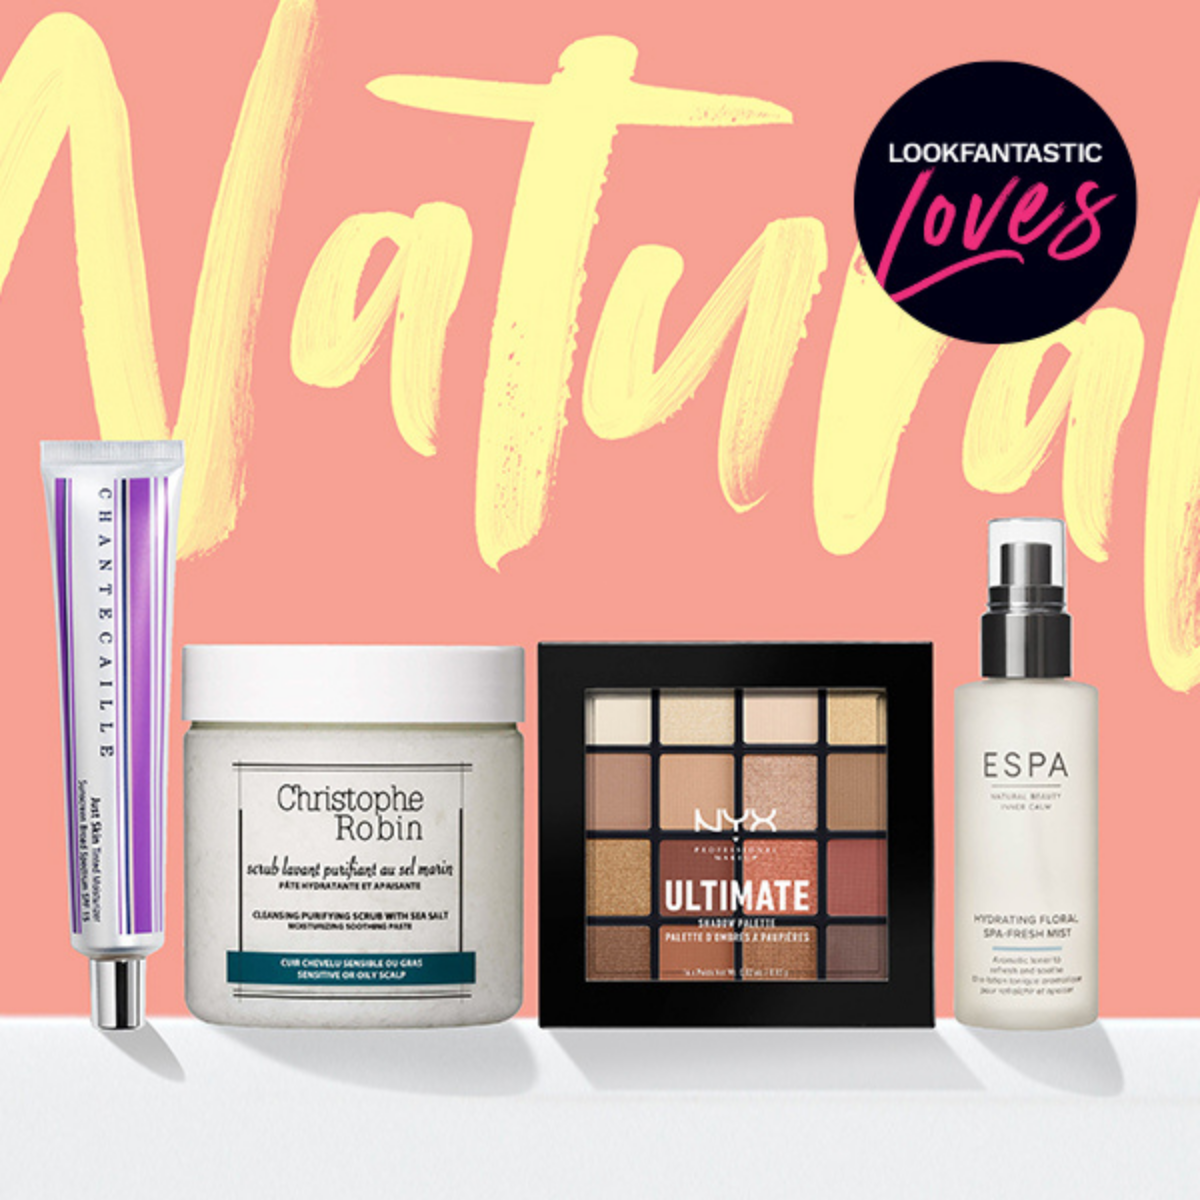 Lookfantastic - 25% Off Regular-Priced Products